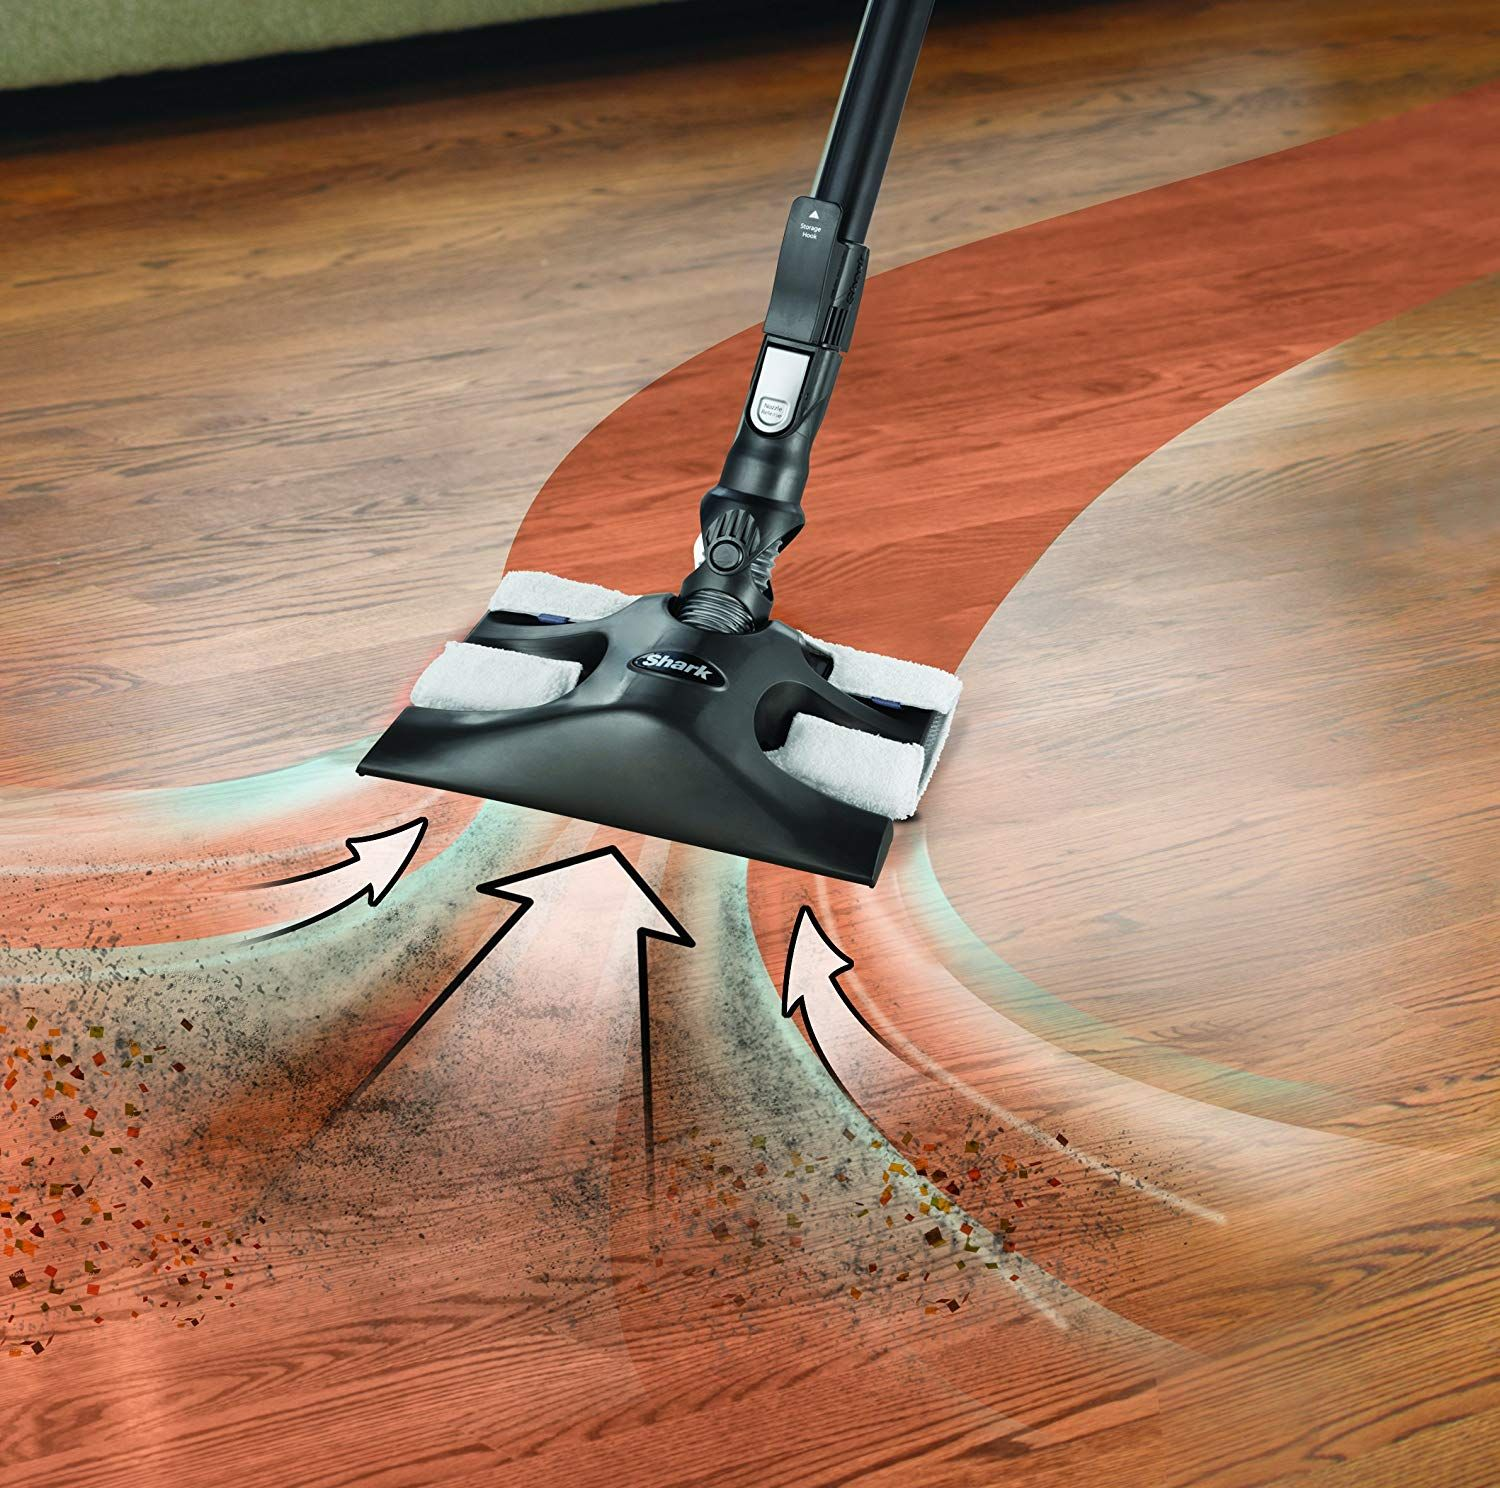 Best Vacuums For Stairs Best Vacuum For Stairs Carpet Good Vacuum For Stairs  What Is The Best Shark Vacuum Cleaner Best Shark Vacuum For Carpet Whatu0027s  The ...